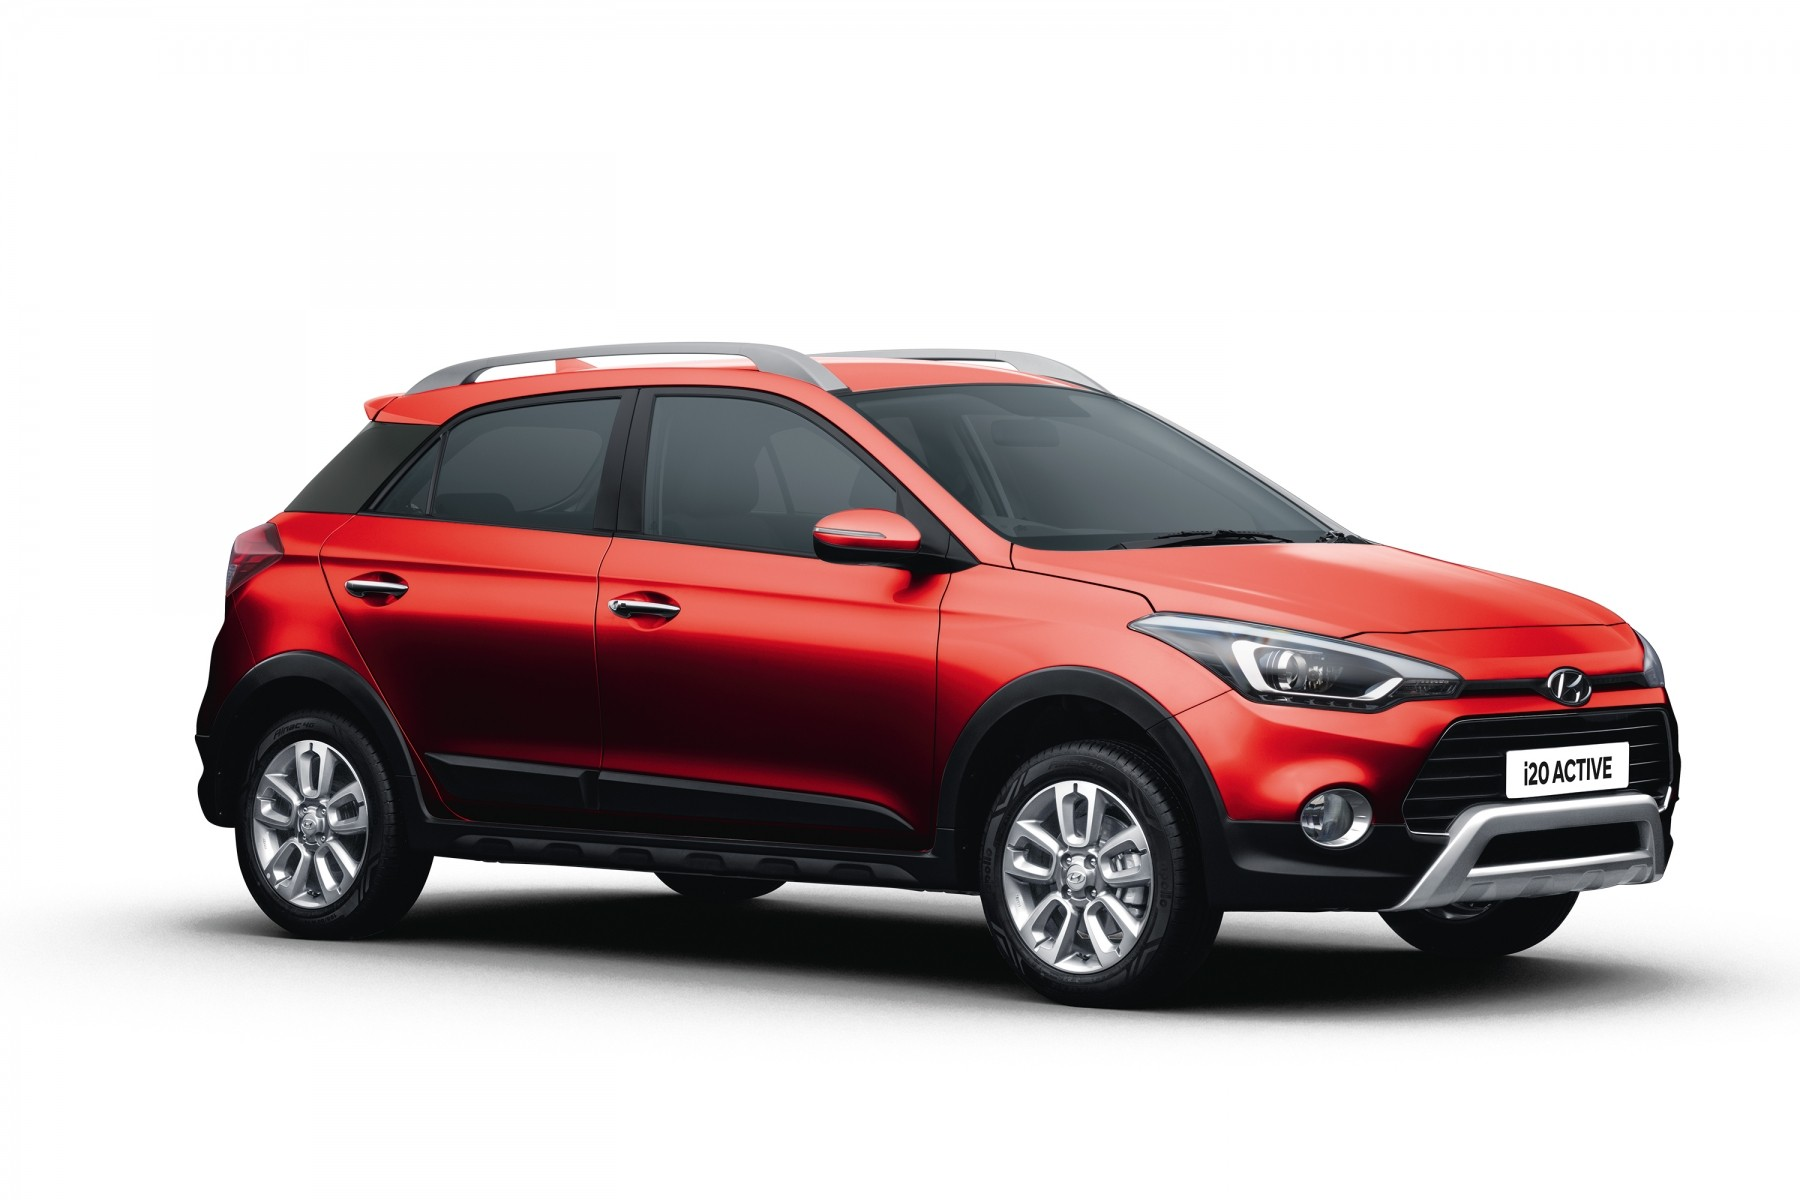 Hyundai launched the i20 Active facelift 2018